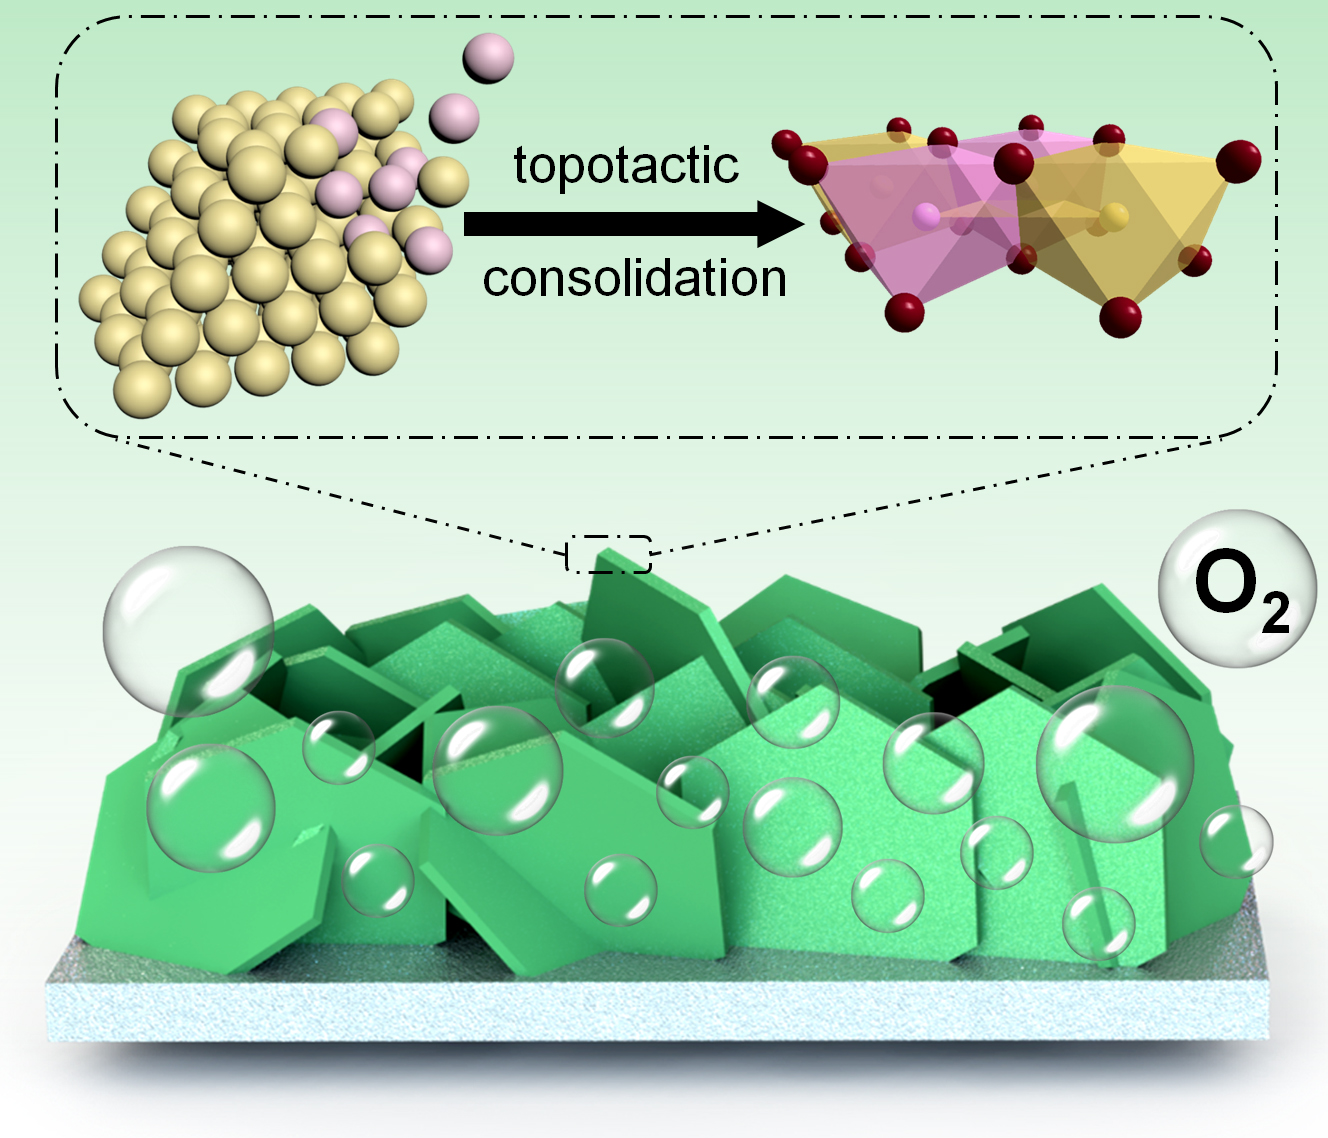 Topotactic Consolidation of Monocrystalline CoZn Hydroxides Towards Advanced Oxygen Evolution Electrodes